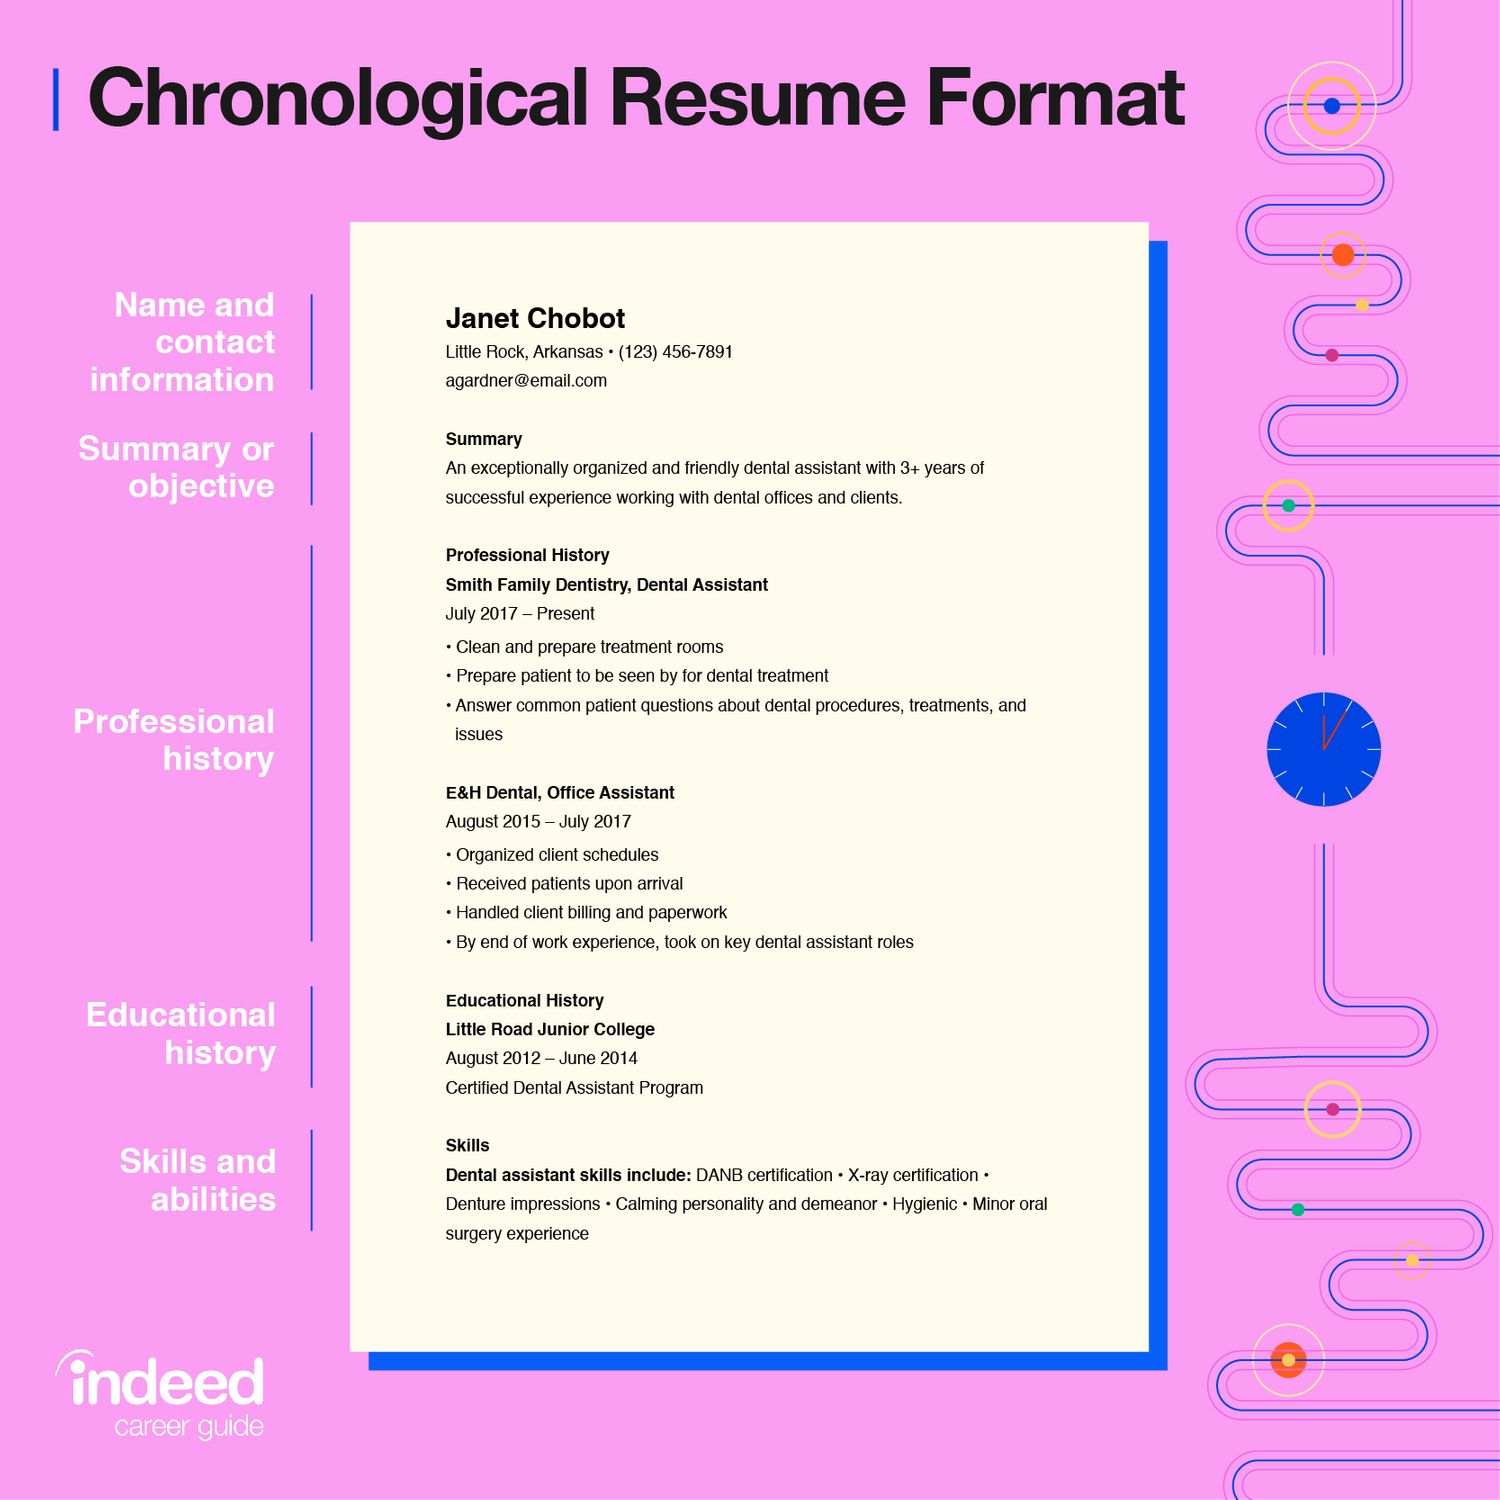 chronological resume tips and examples indeed order format resized most successful Resume Chronological Order Resume Format